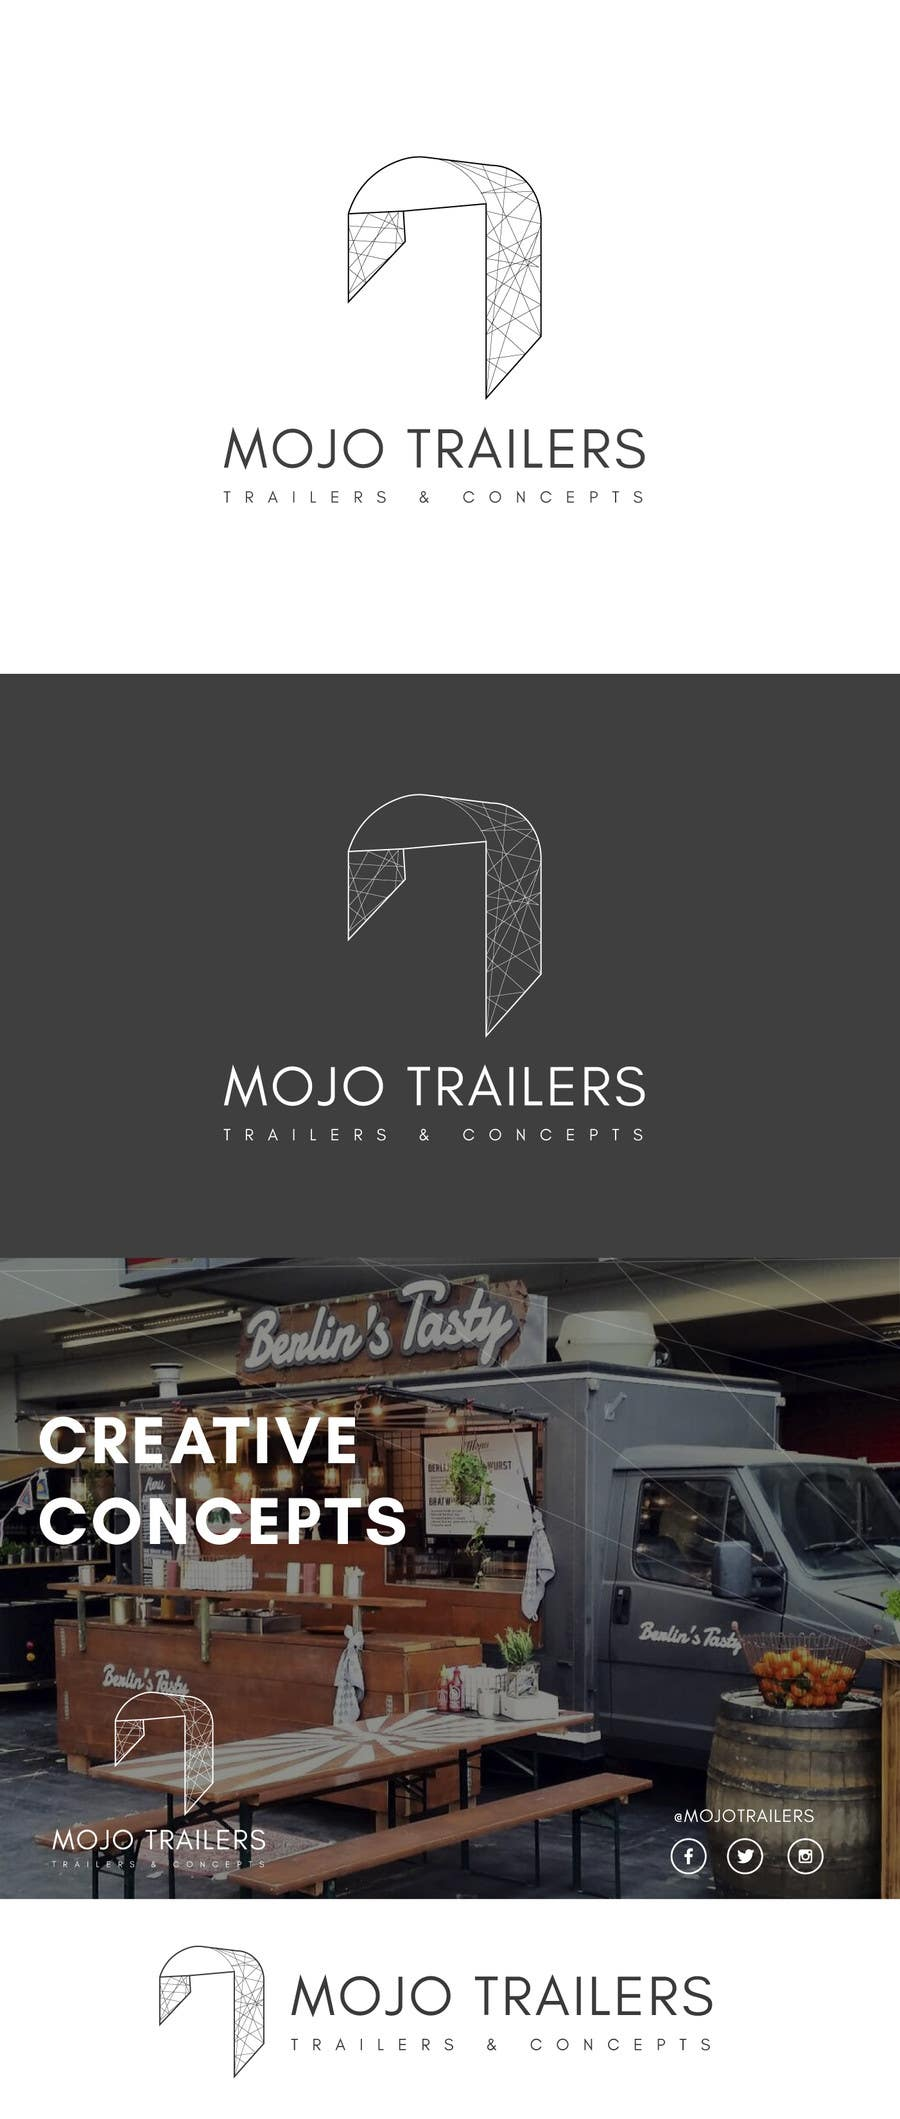 Proposition n°120 du concours Logo design for a foodtruck branding company (www.mojotrailers.com)